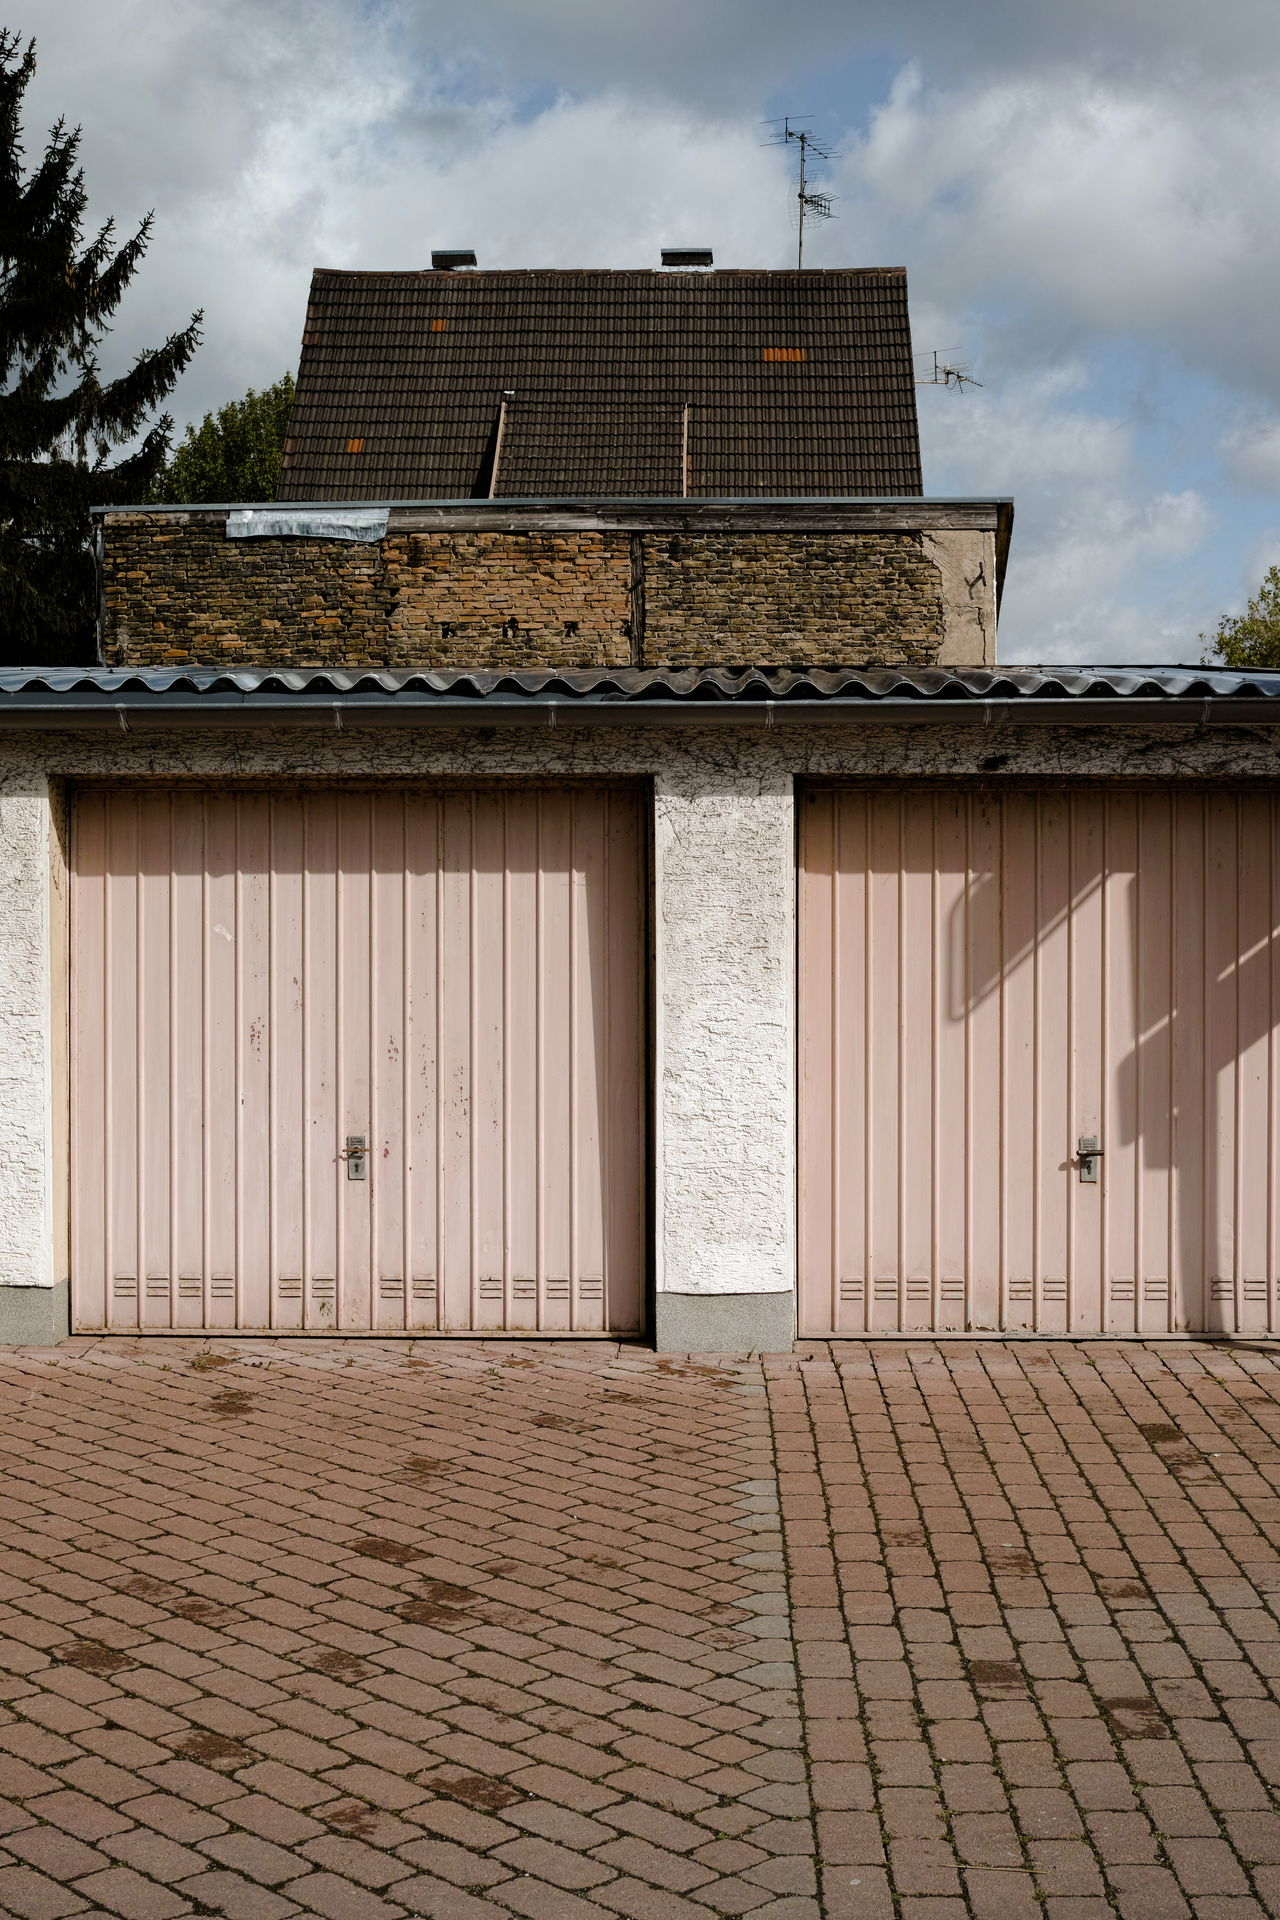 Garage Architecture Building Building Exterior Built Structure Cloud - Sky Cloudy Exterior Façade Garage Garage Doors Germany Old Wall Outdoors Overcast Pavement Roof Sky Suburbia Walkway Wall